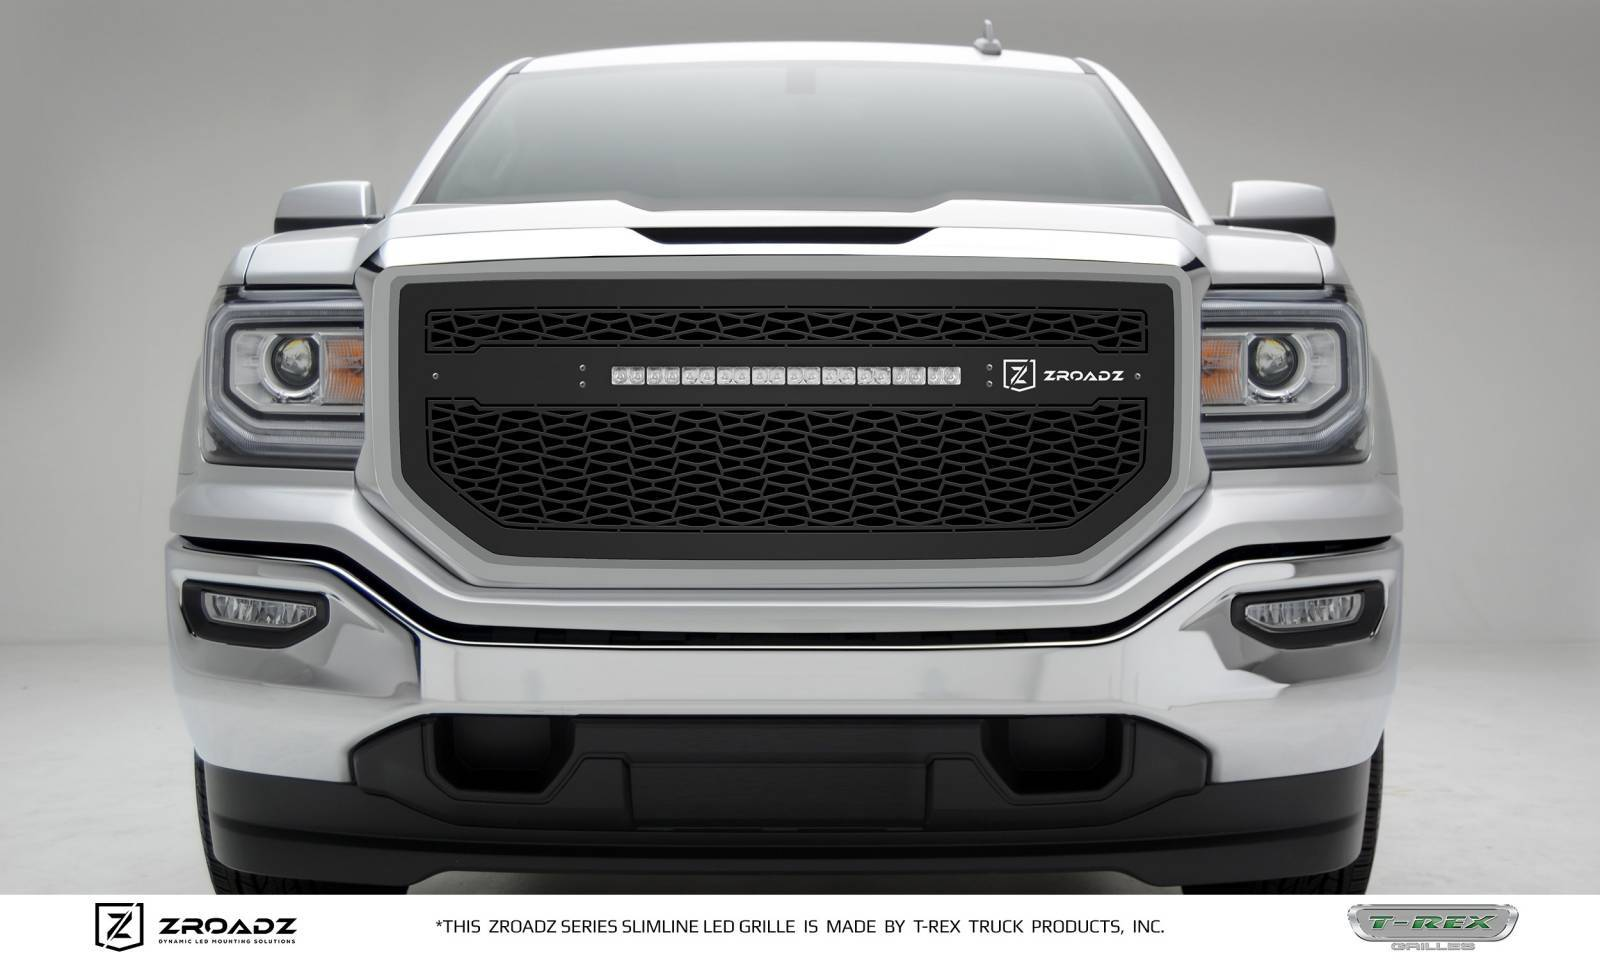 GMC Sierra 1500 - ZROADZ Series - Main Insert - Grille w/ One 20 Inch Slim Line Single Row LED Light Bar - Includes Universal Wiring Harness - Part# Z312131